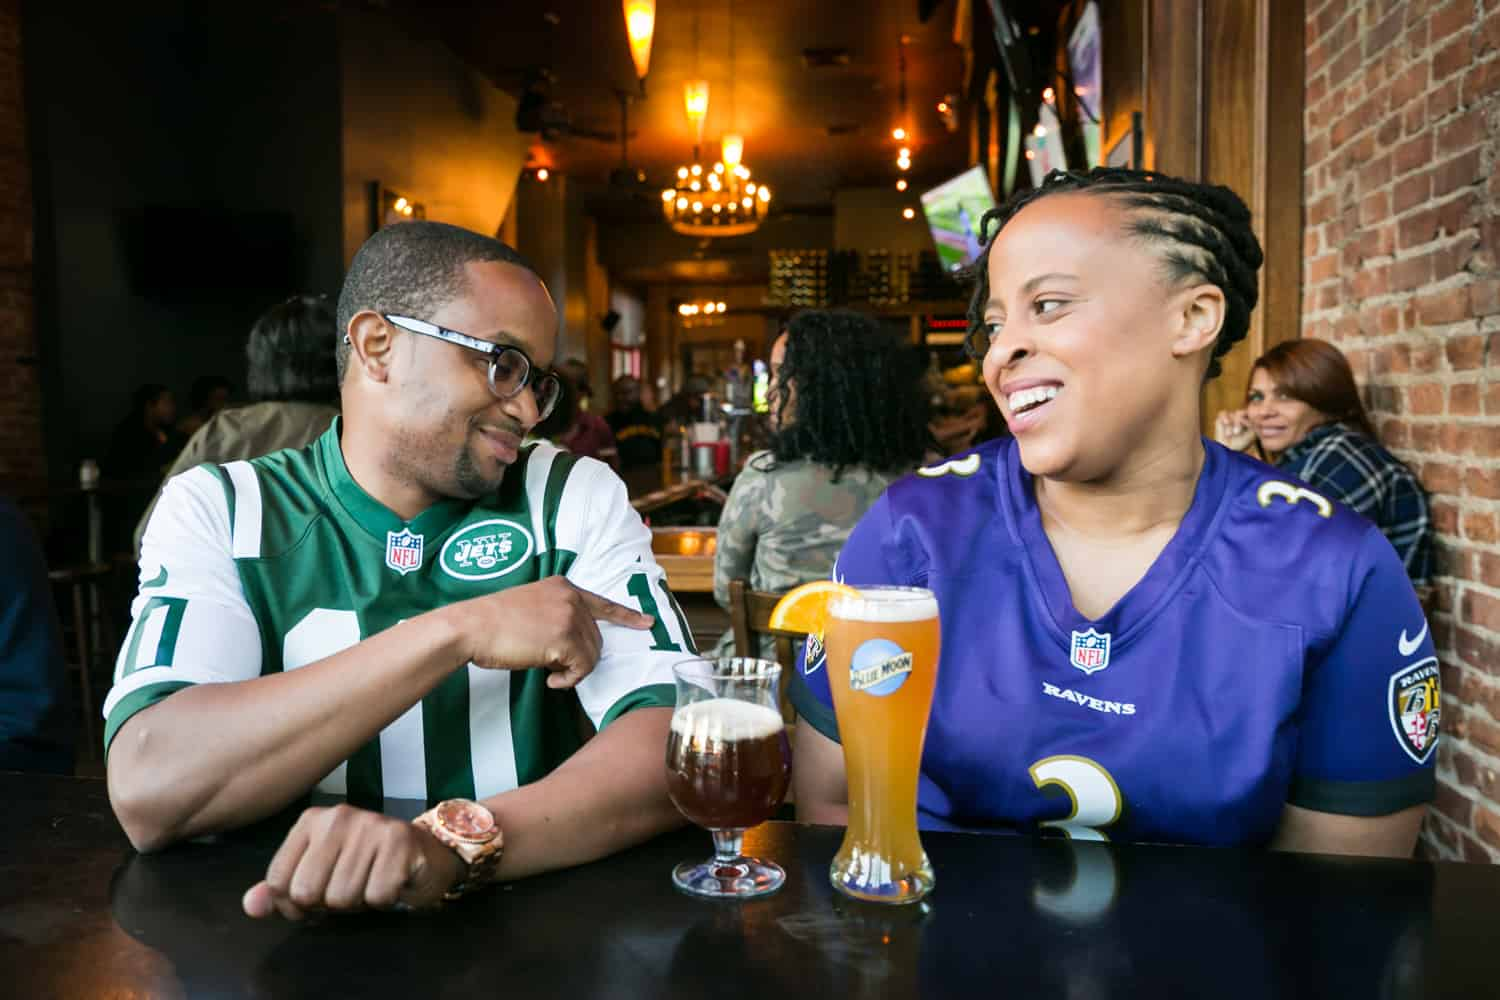 African American couple sitting at bar and wearing football jerseys